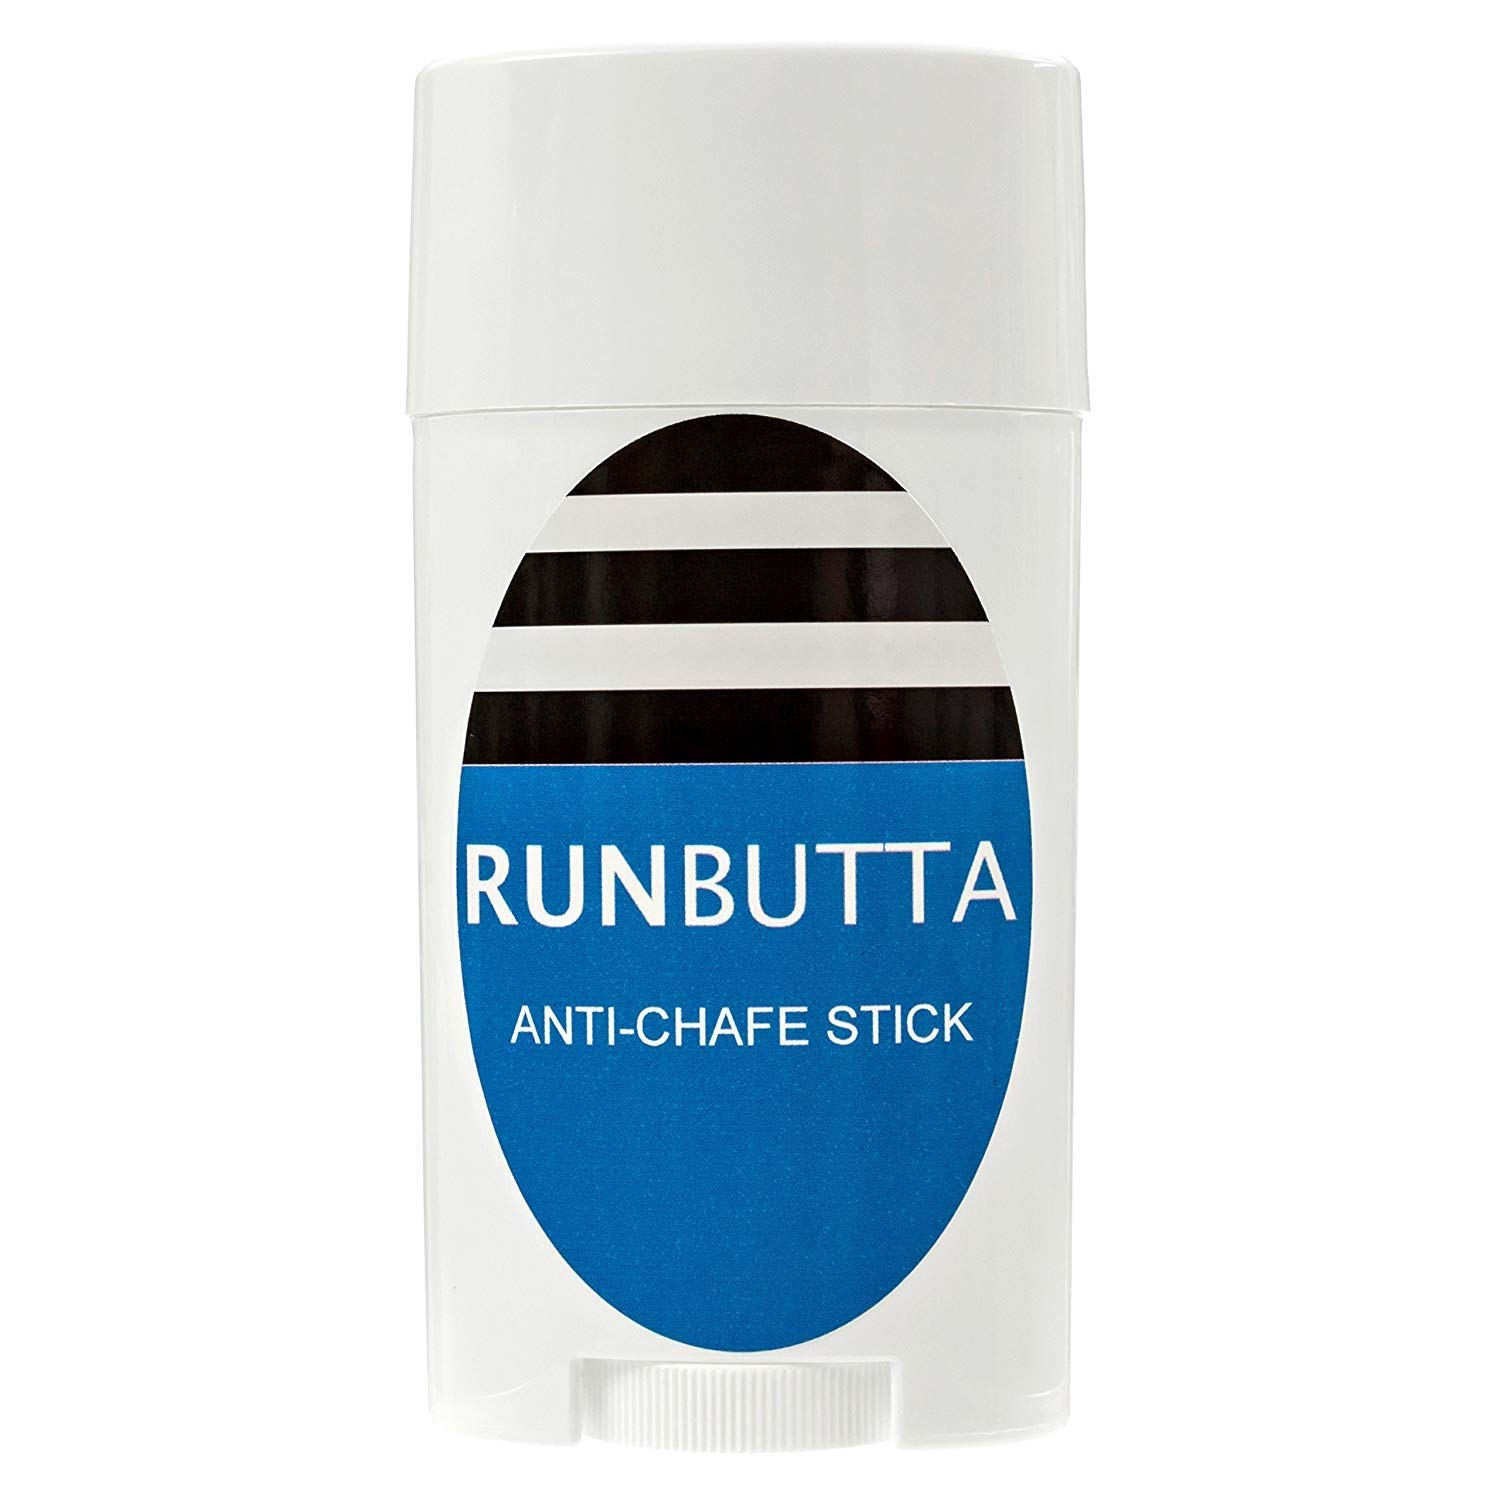 Anti Chafe Balm by Run Butta, 2.5 Ounce Stick - Eliminate Painful Skin Chafing Caused by Rubbing/Friction - Ideal for Inner Thighs - Paraben Free, Water and Sweat Resistant Anti Chafing Cream